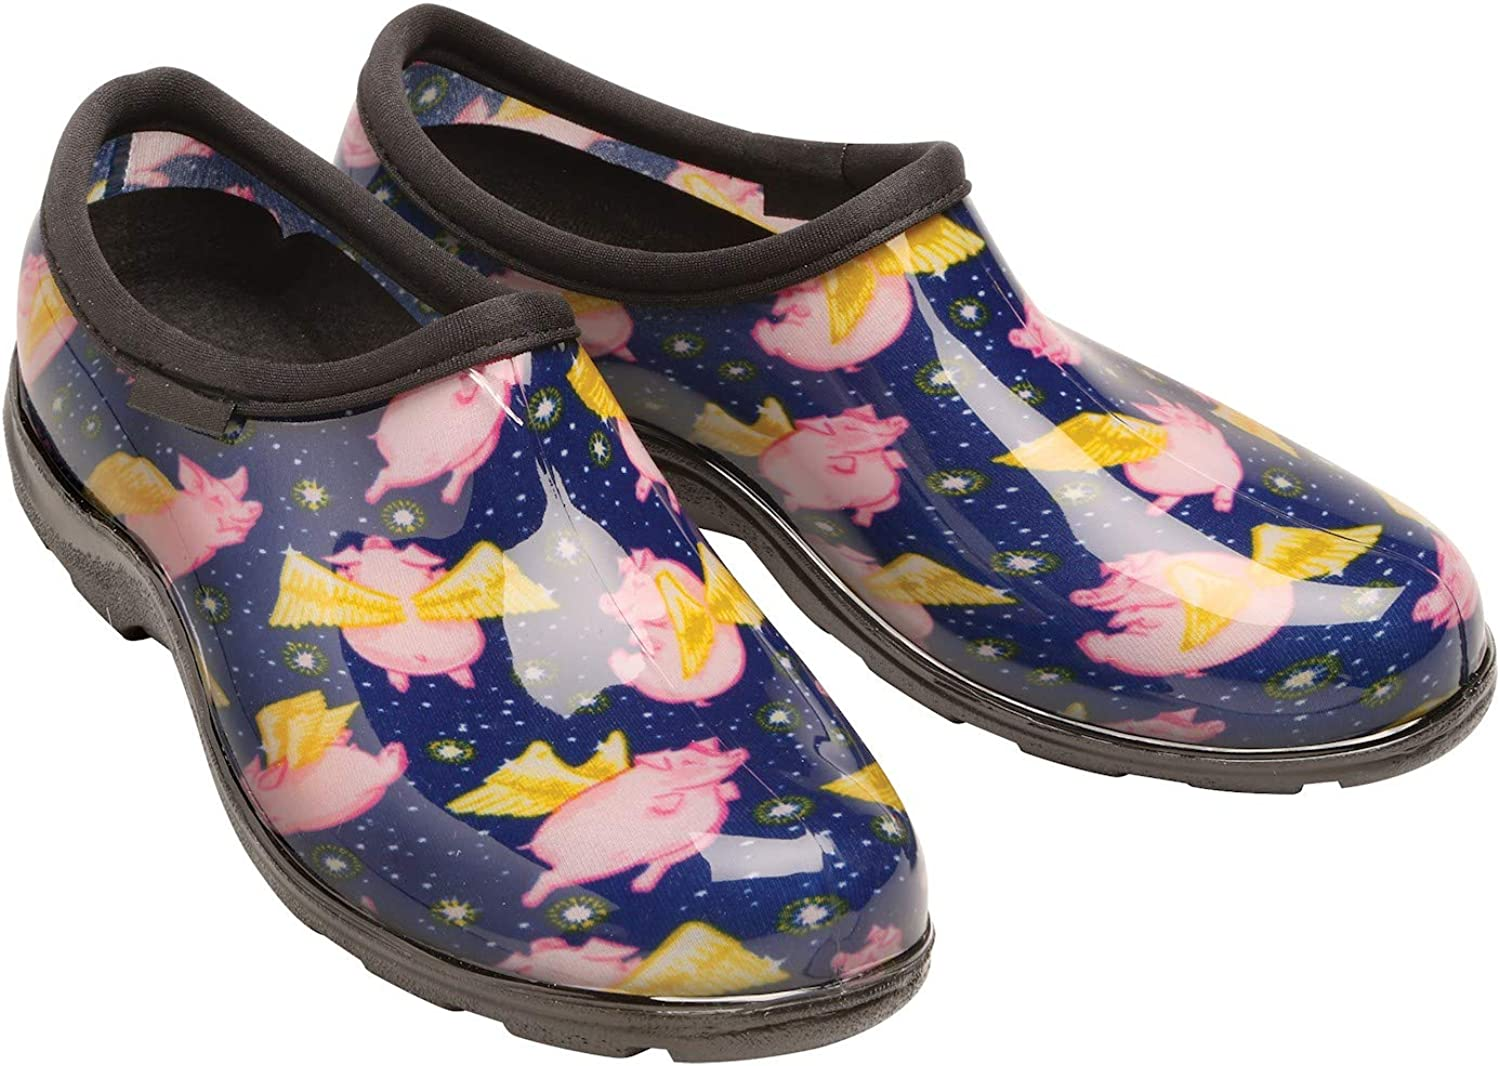 Sloggers Women's Waterproof Rain and Gardening Clog shoes - When Pigs Fly Print - 7